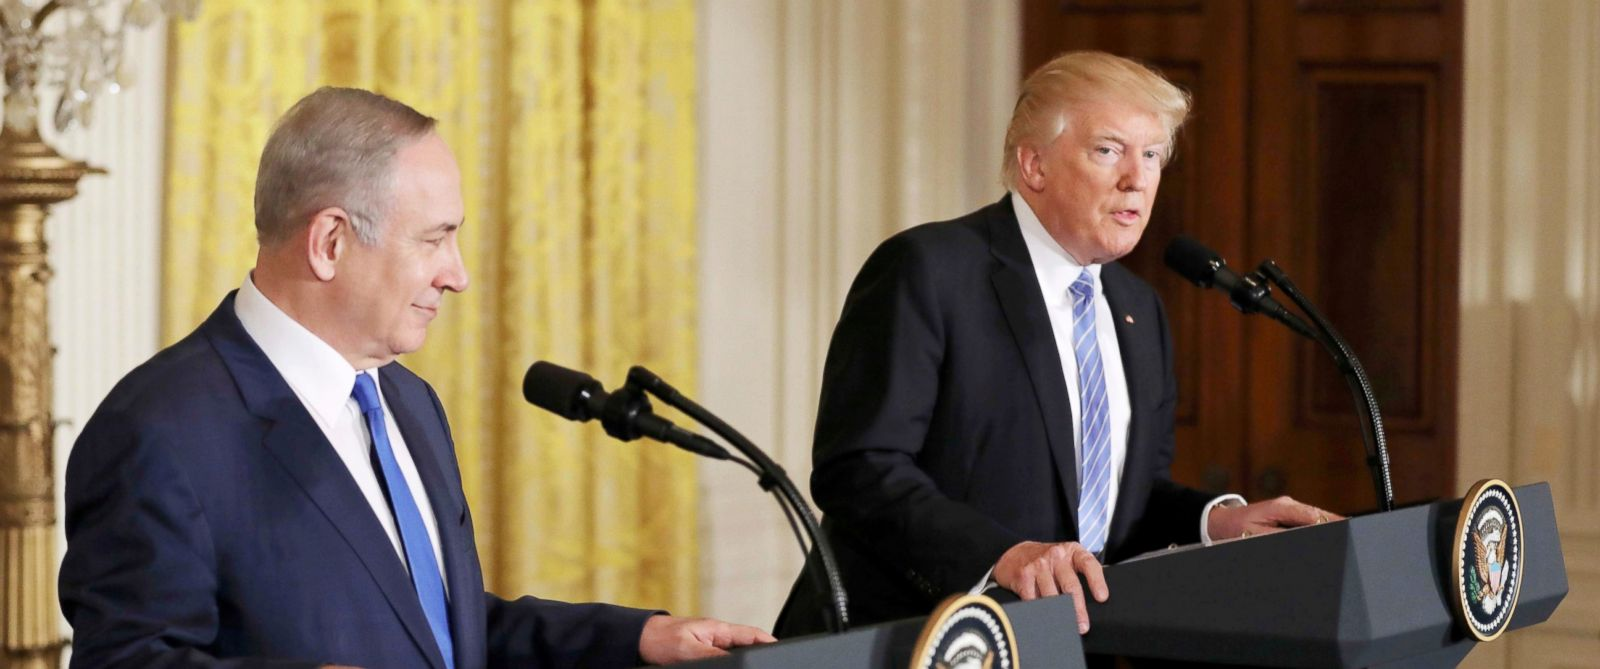 PHOTO: Israeli Prime Minister Benjamin Netanyahu and President Donald Trump hold a joint news conference at the White House in Washington, Feb. 15, 2017.